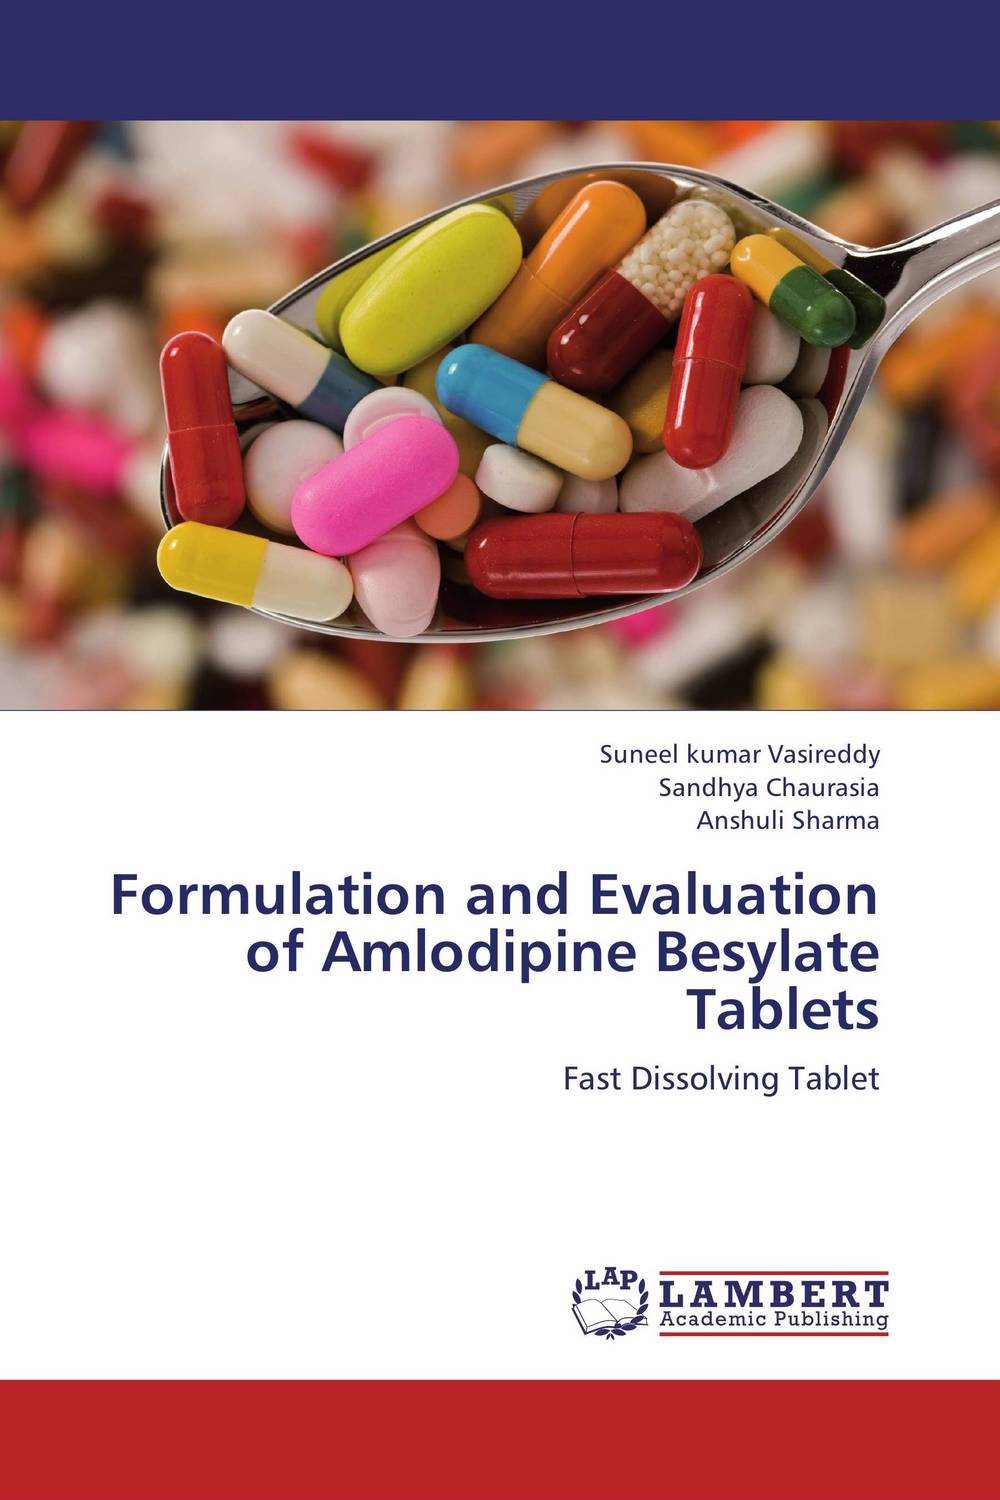 Formulation and Evaluation of Amlodipine Besylate Tablets rakesh kumar tiwari and rajendra prasad ojha conformation and stability of mixed dna triplex